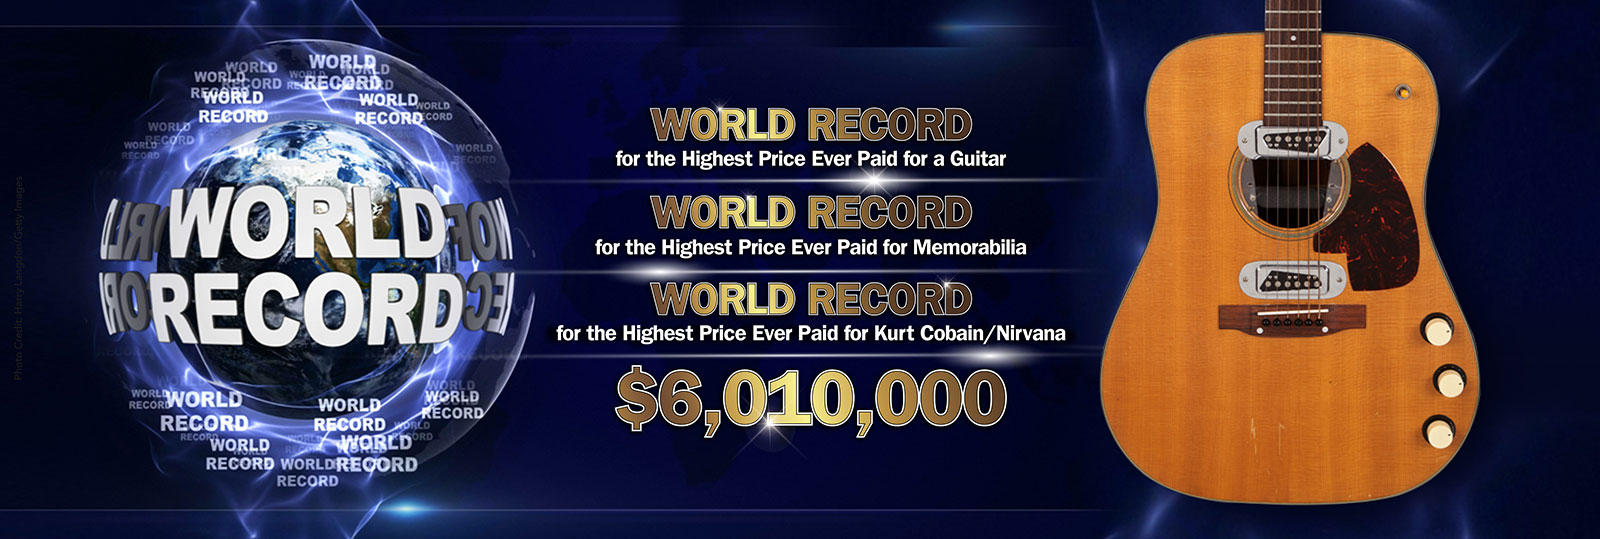 Kurt Cobain Guinness World Record